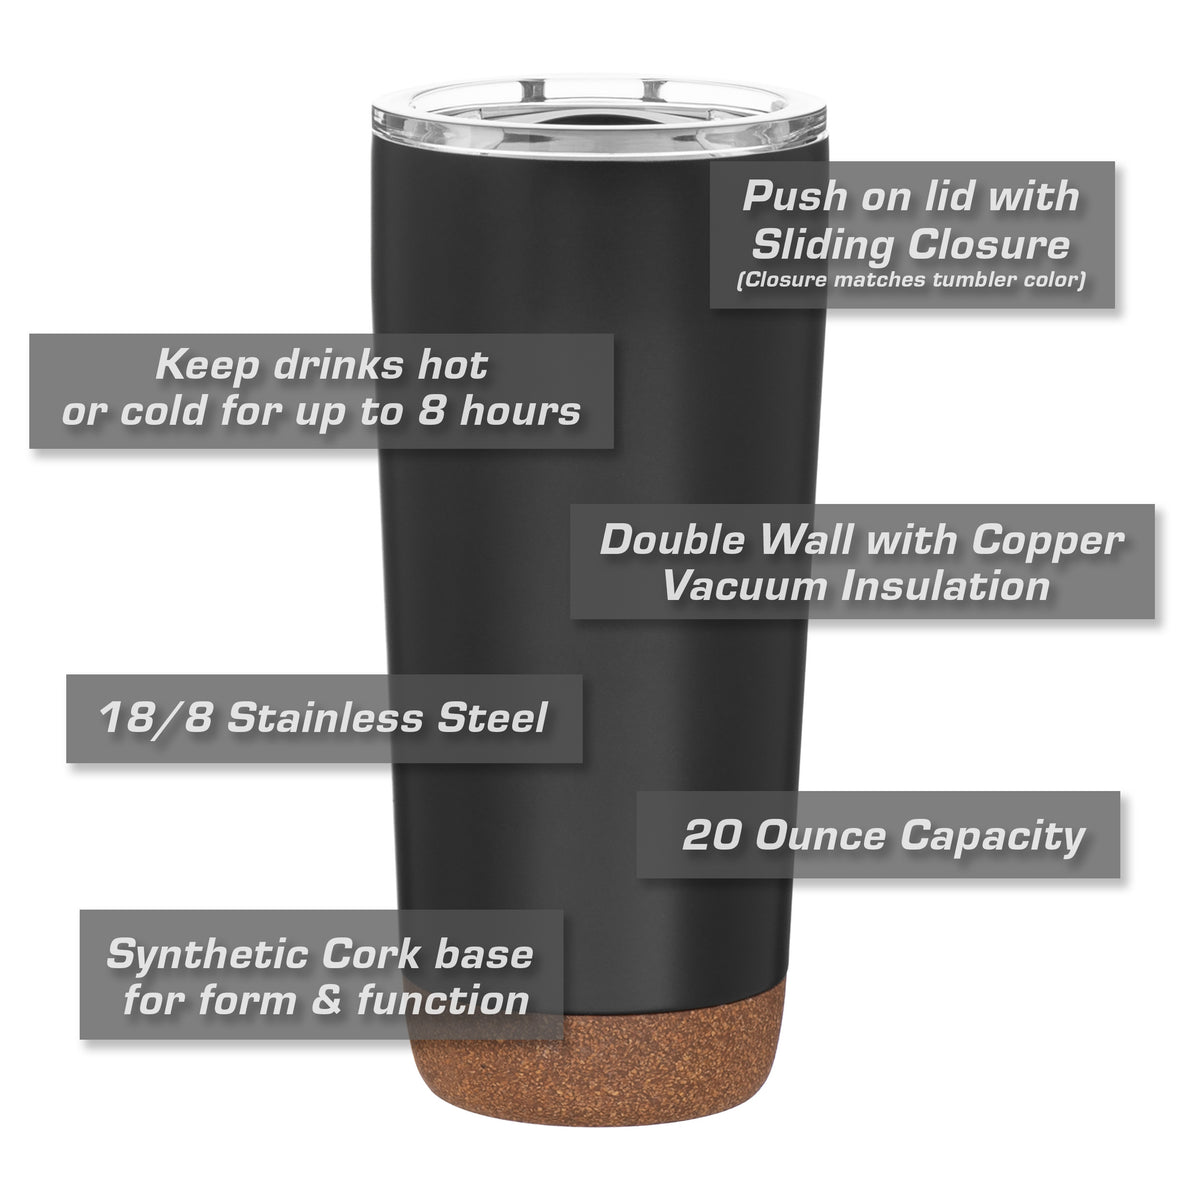 Audi R8 Insulated Stainless Steel Coffee Tumbler - 20 oz